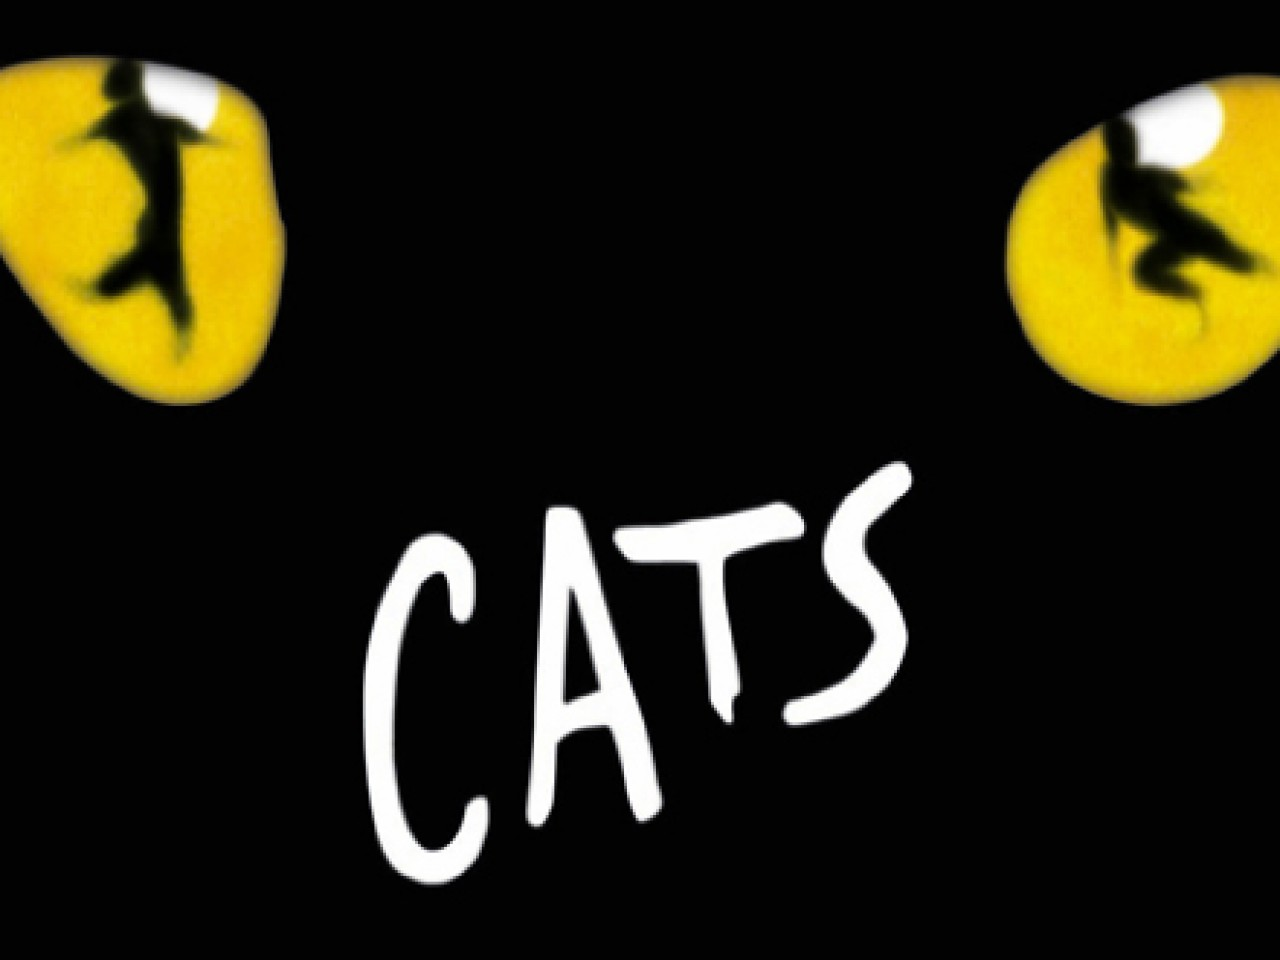 Cats -Andrew Lloyd Webber's long-running classic is back on